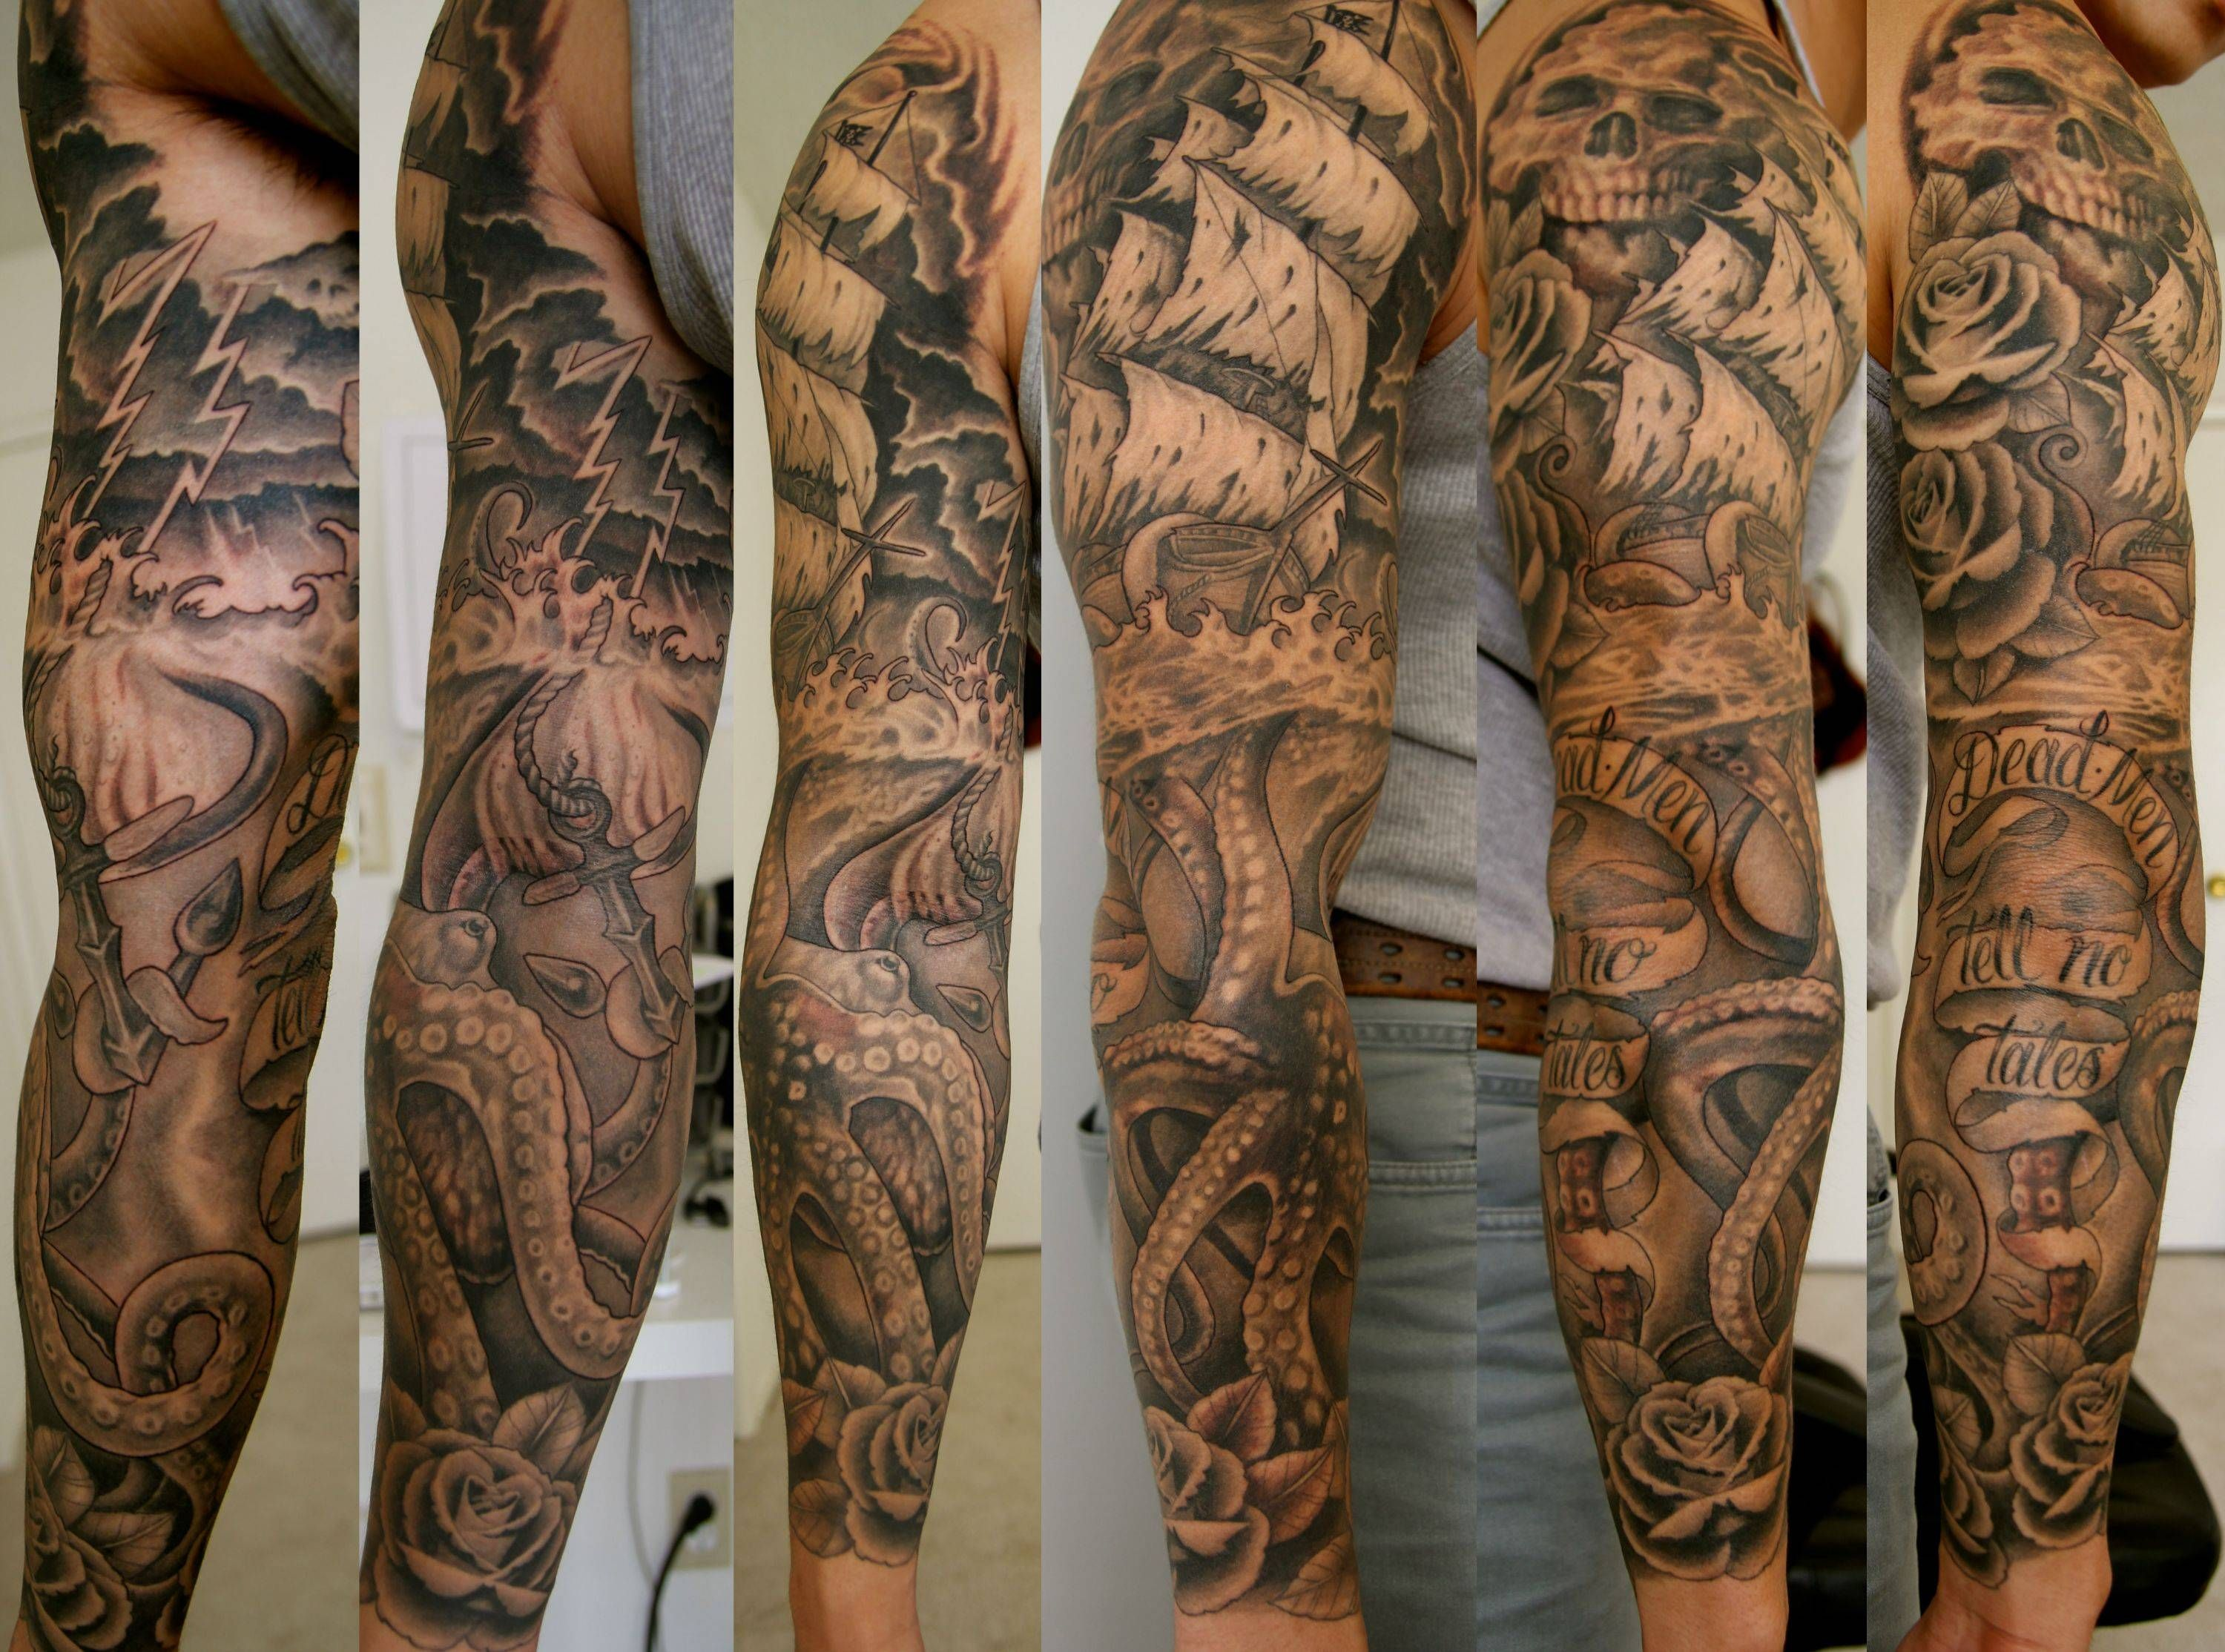 Lower leg guys traditional sleeve tattoos - My Pirate Ship Kraken Sleeve Finished Up About A Month Ago By Jason Stores Tattoo Lounge Los Angeles